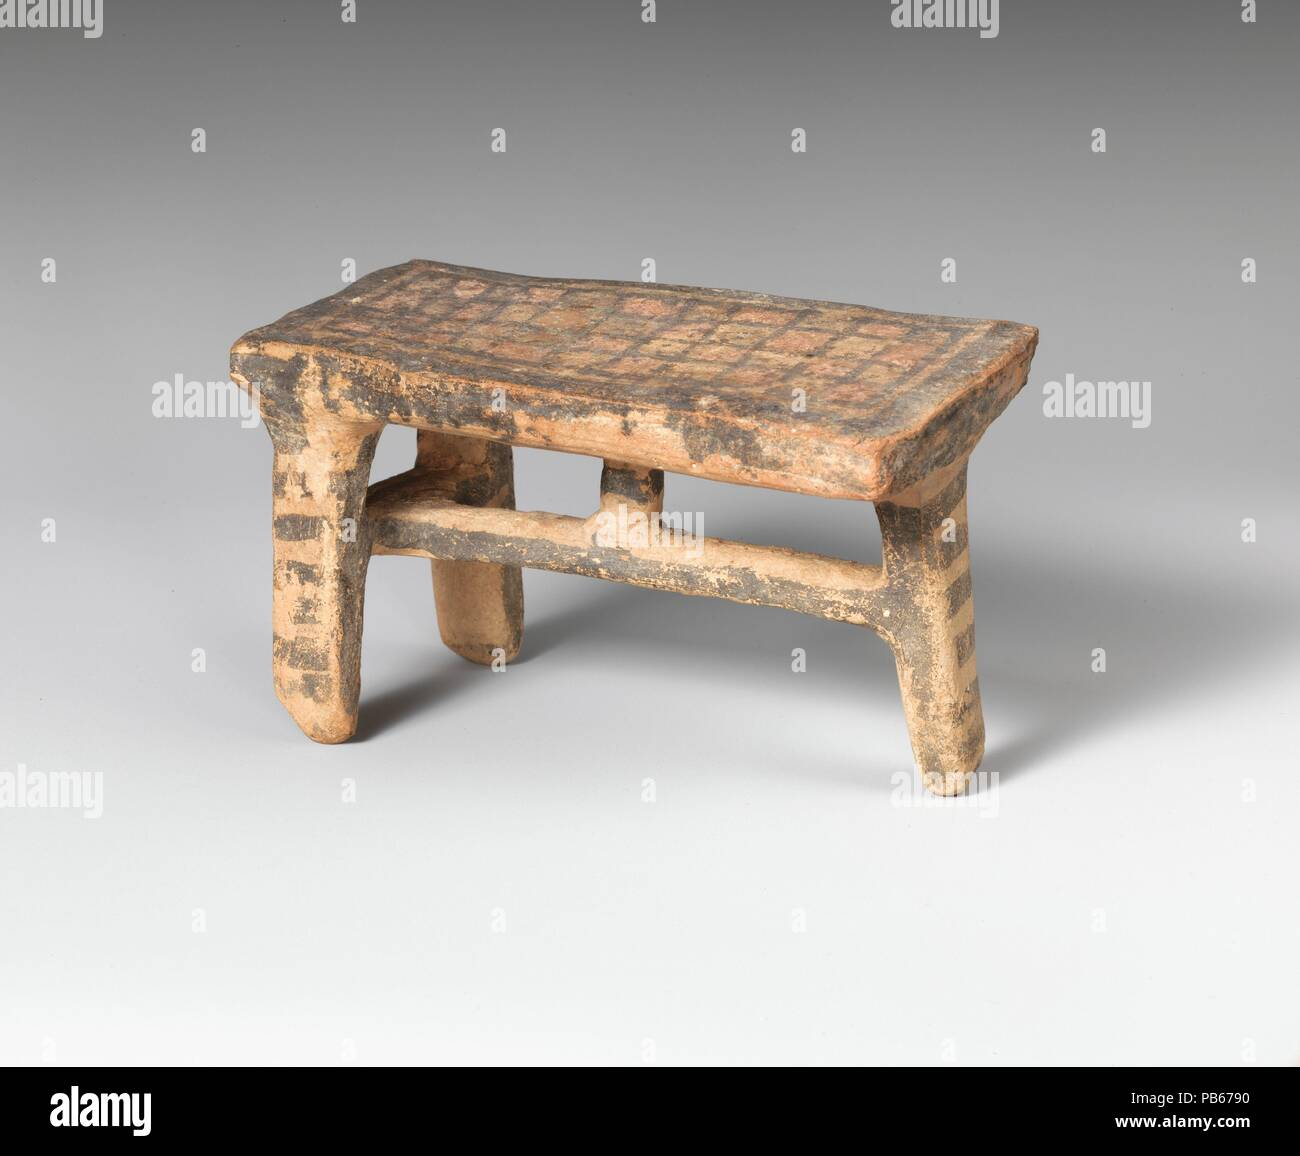 Terracotta table. Culture: Cypriot. Dimensions: H. 2 7/8 in. (7.3 cm). Date: ca. 600-480 B.C..  This is one of three known Cypriot models of tables. The rectangular top is supported on three legs, a convention familiar from the Aegean region and the Near East as well. The checkerboard pattern on the top is interesting; it recalls the shrouds of Attic geometric funerary vases and raises the question whether these tables might have been used as biers. Museum: Metropolitan Museum of Art, New York, USA. - Stock Image